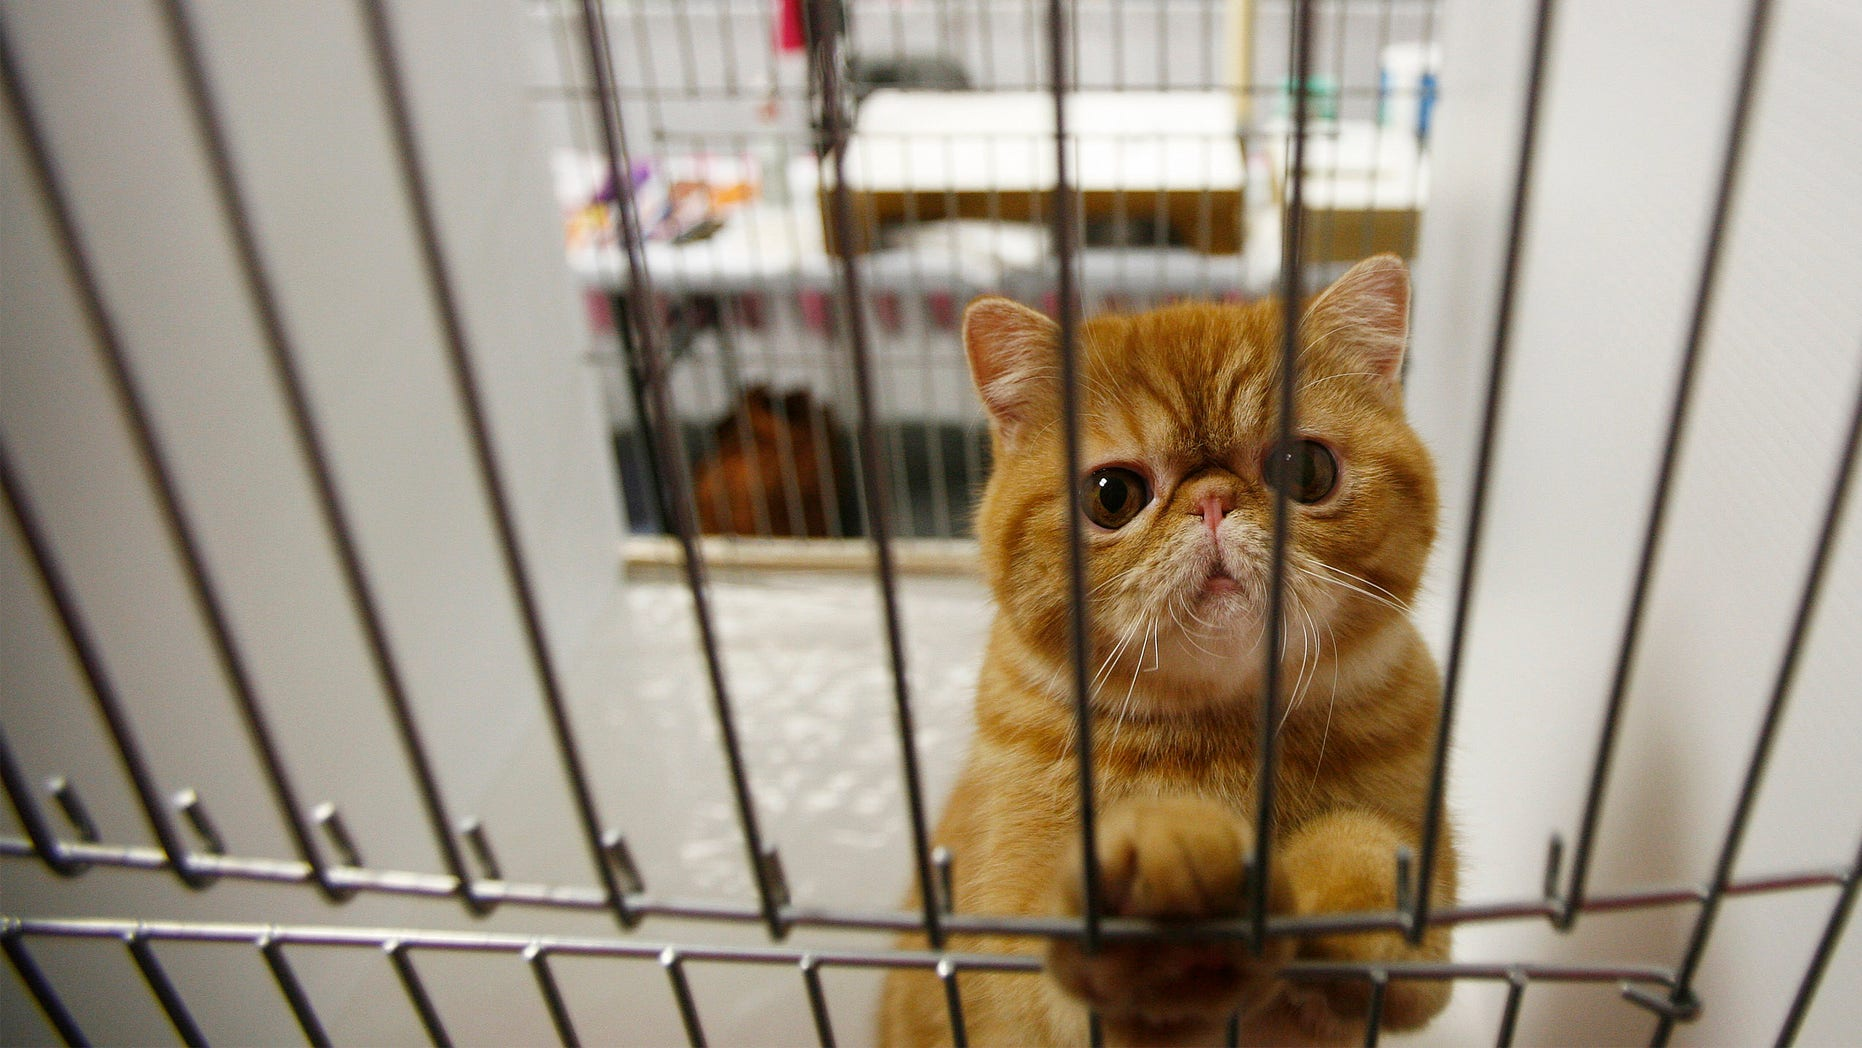 A Tabby cat awaits judging in a cage during the Cat Fanciers' Association - Iams cat championship show in New York October 13, 2007. REUTERS/Lucas Jackson  (UNITED STATES) - RTR1UVTT